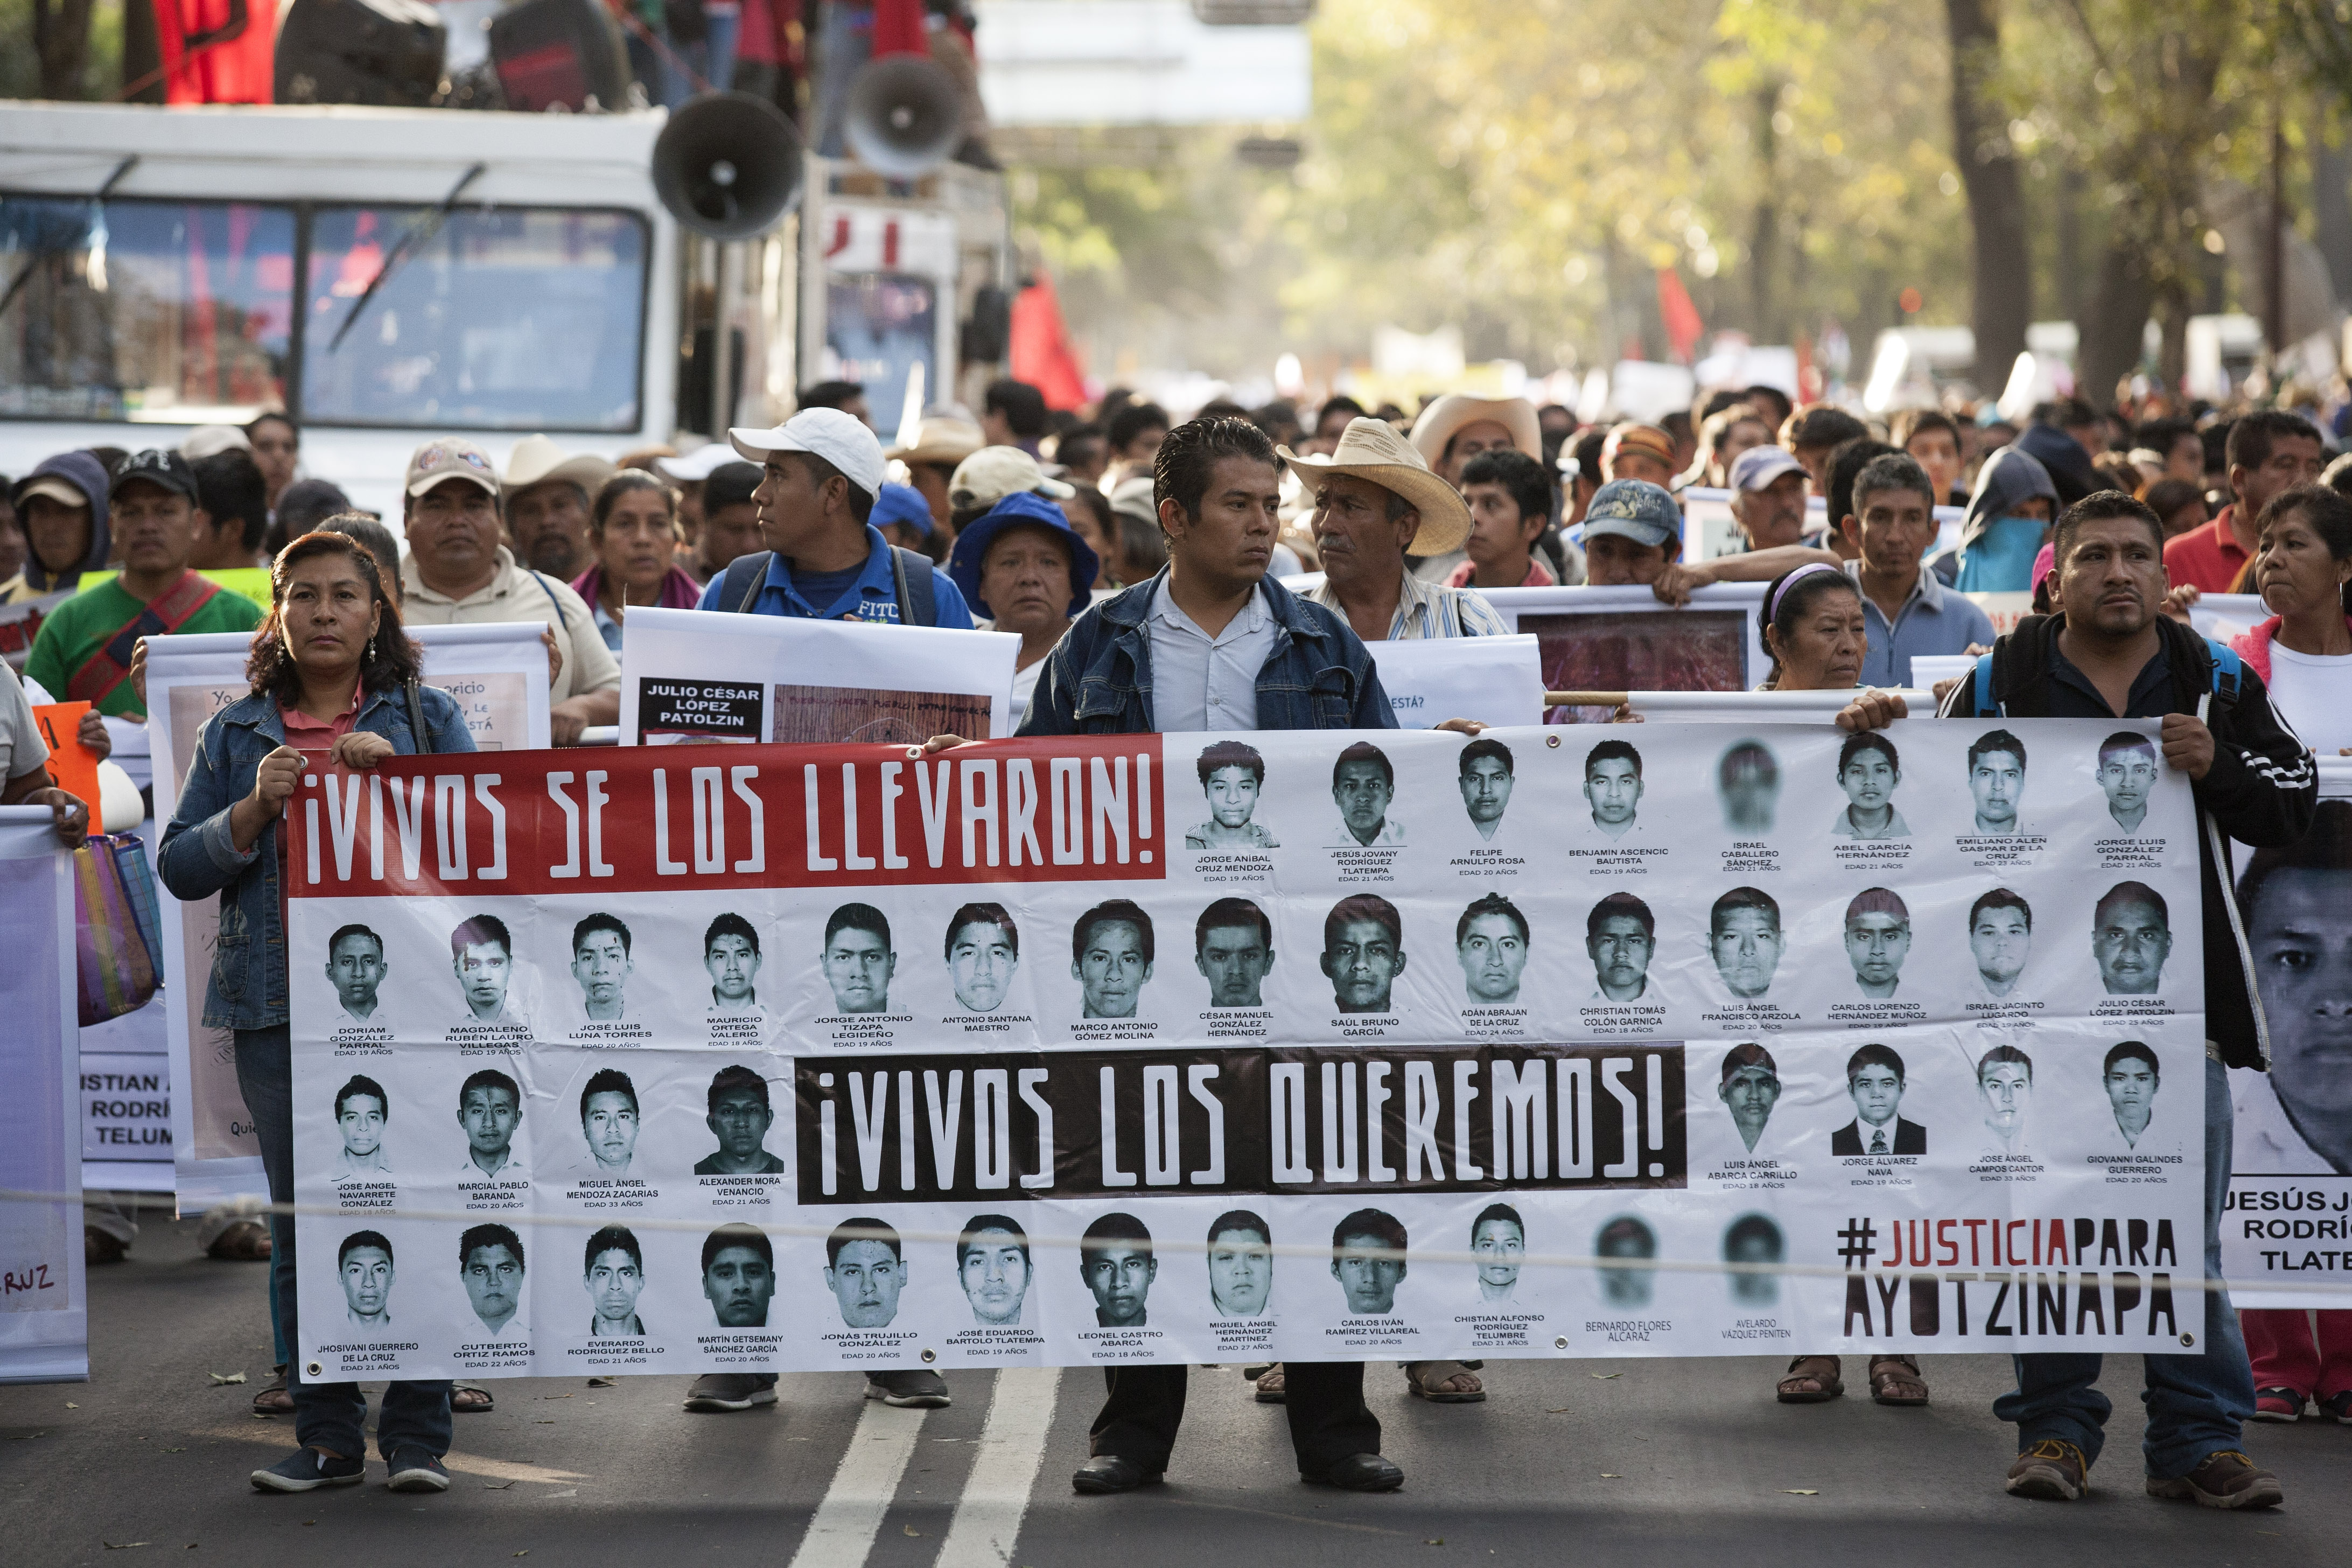 Protestors and family of 43 missing students from Guerrero State in Mexico march to protest the government and demand answers of the missing students on Nov. 5, 2014 in Mexico, City.